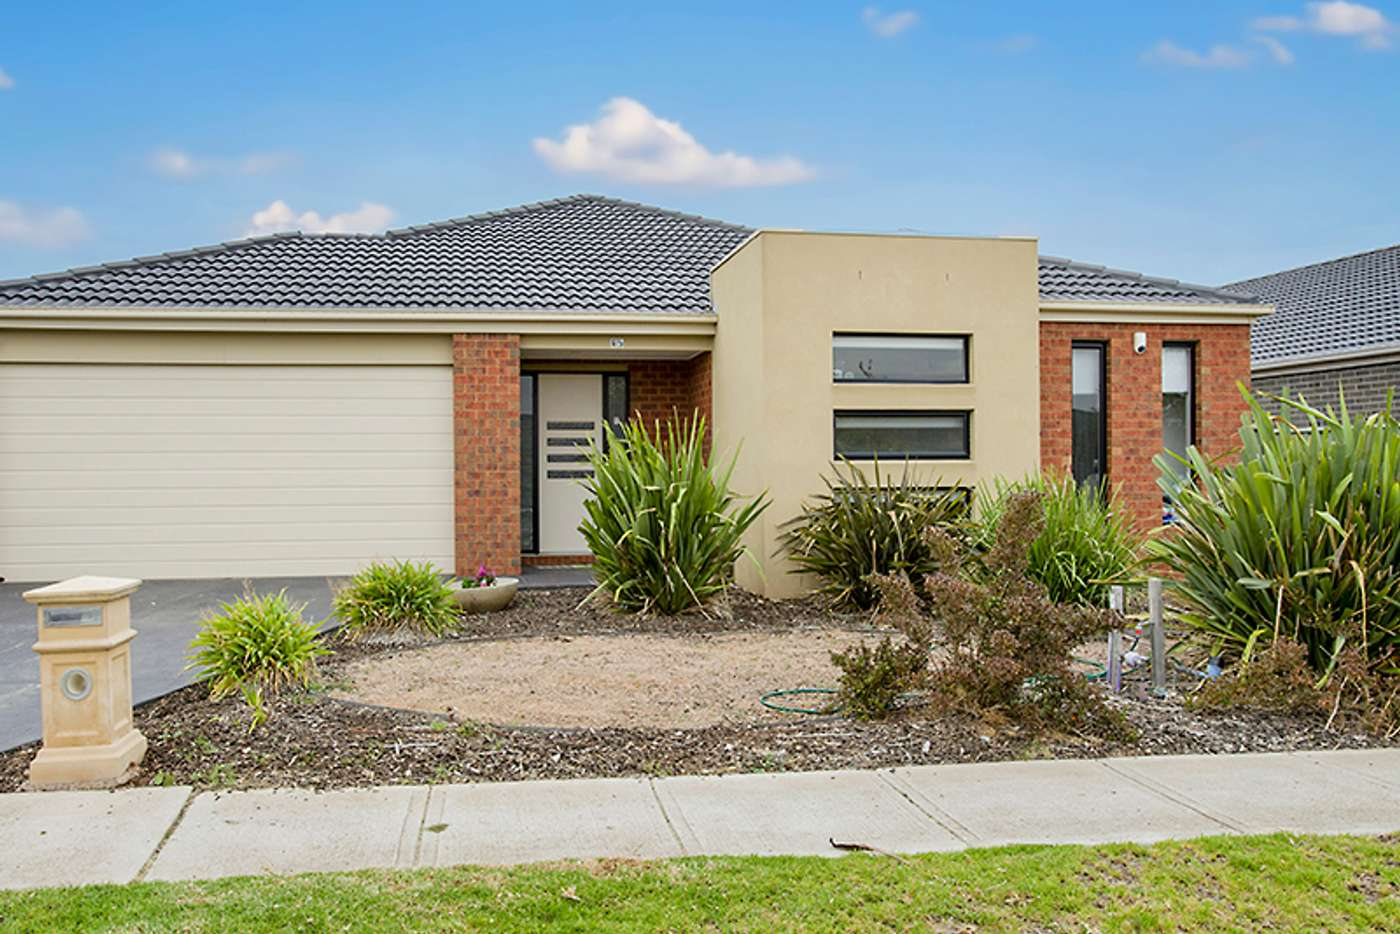 Main view of Homely house listing, 65 Haines Drive, Wyndham Vale VIC 3024